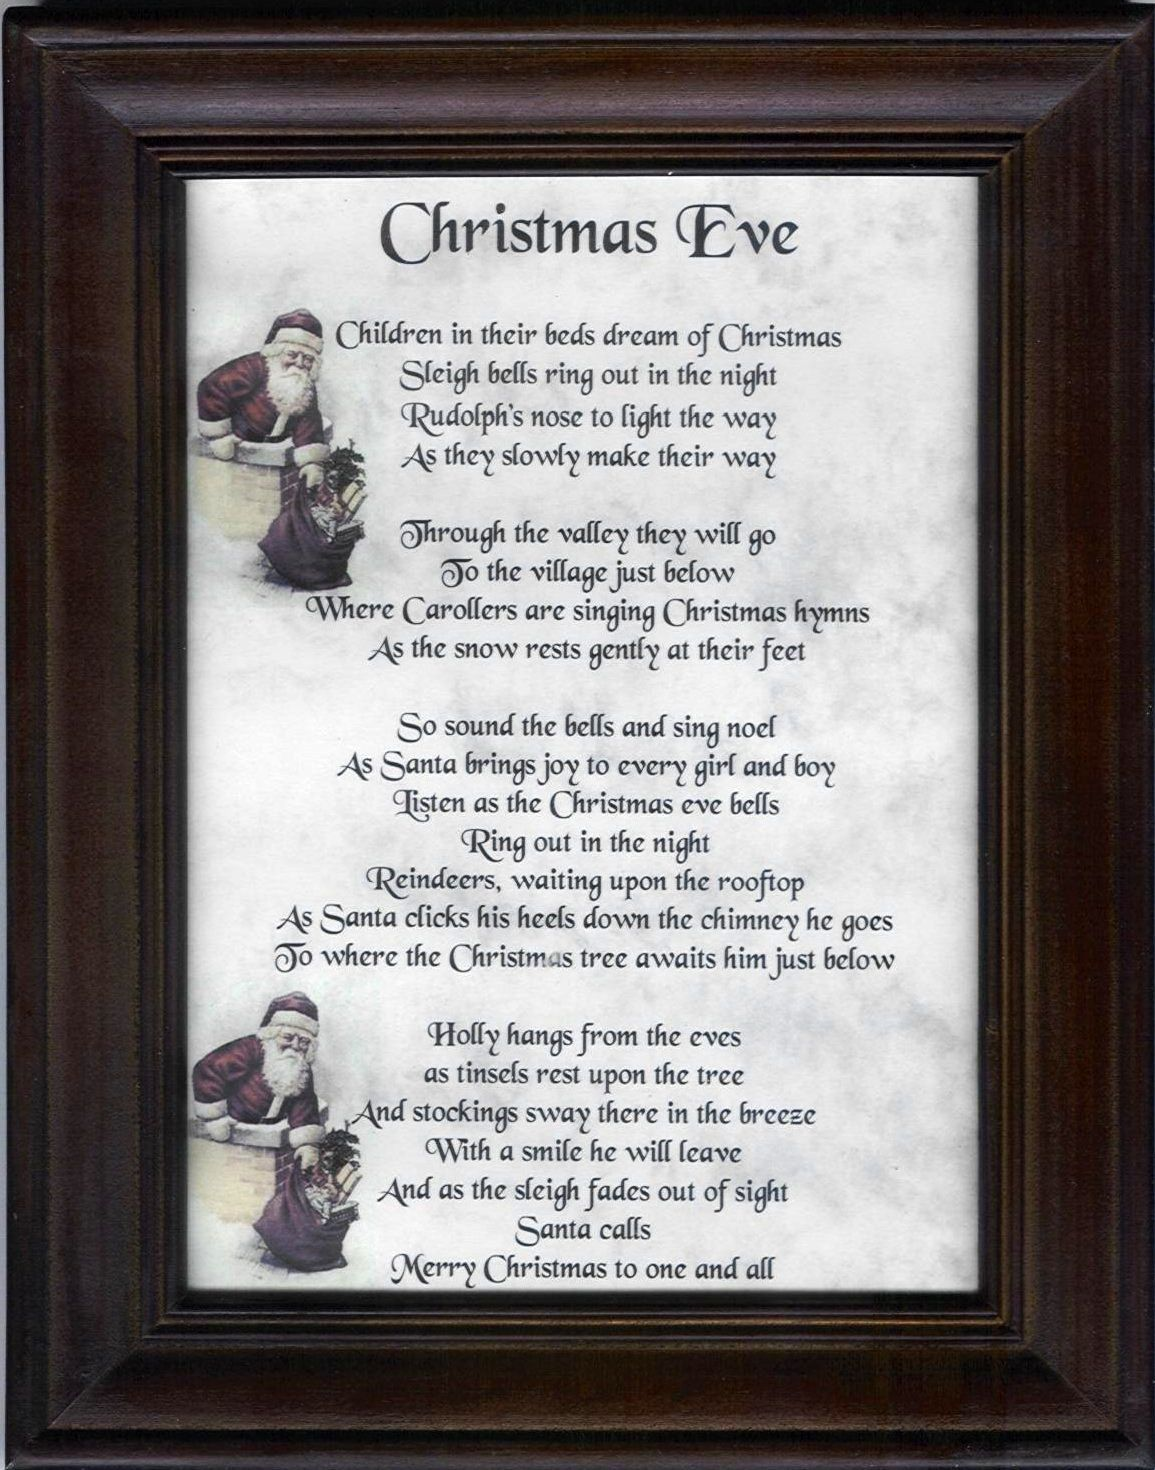 Christmas Eve poem | Holidays | Pinterest | Christmas eve, Holidays ...